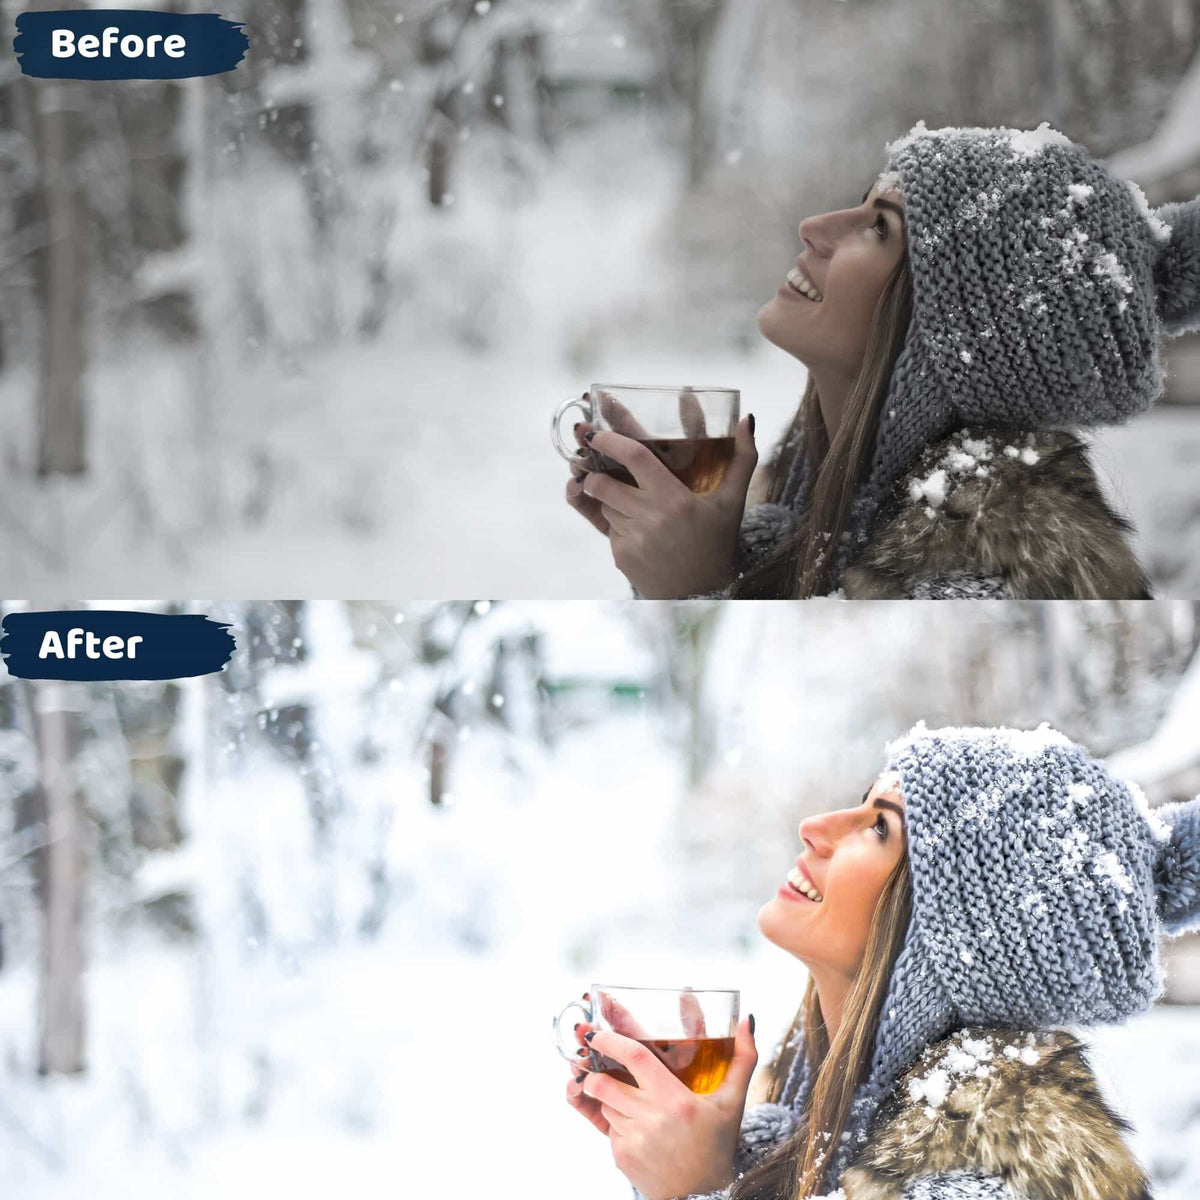 Snow Lightroom Presets Instagram